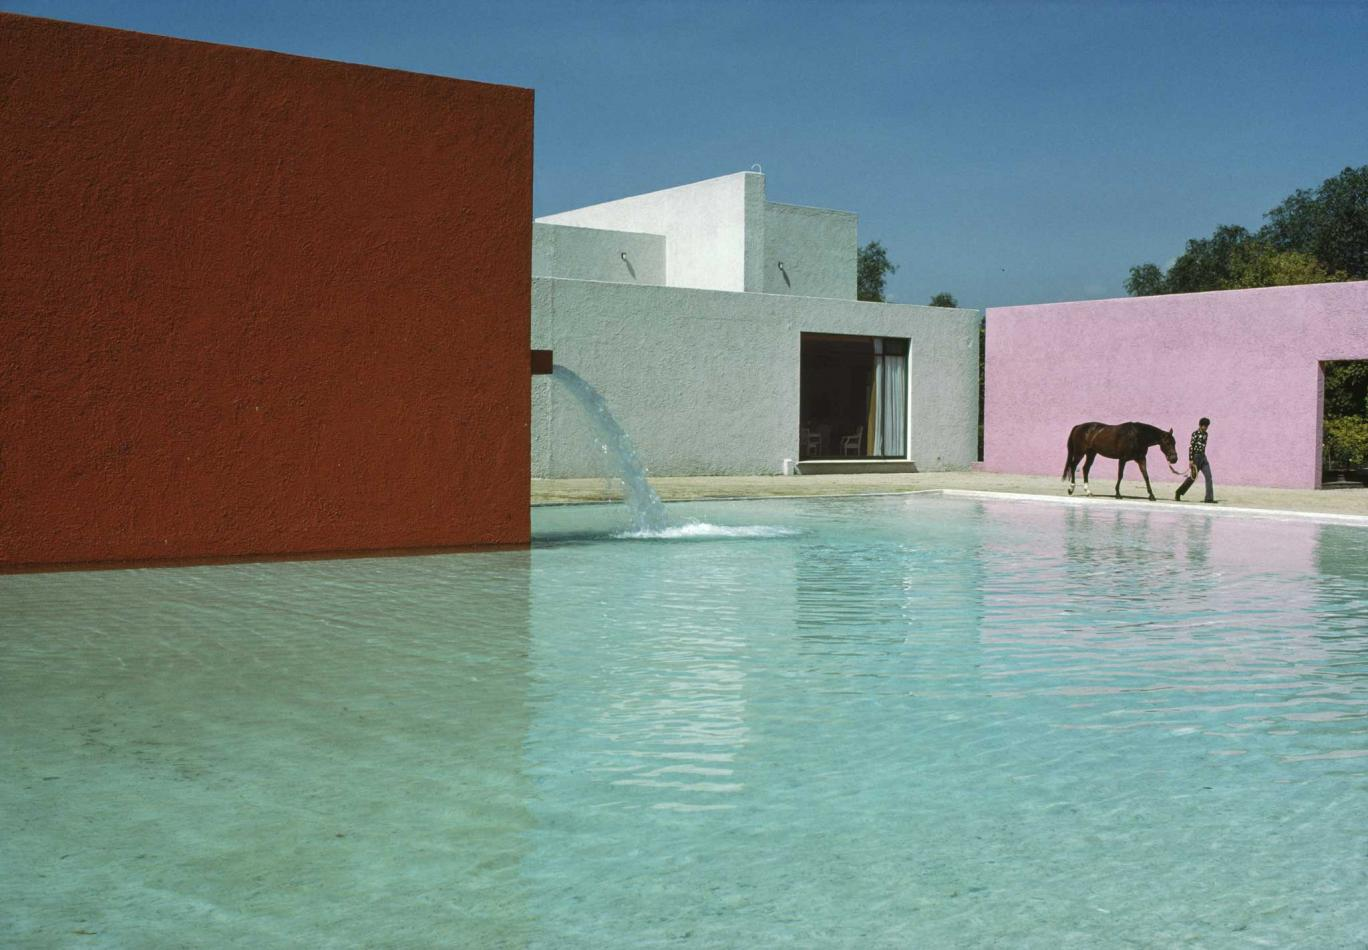 San Cristobal Stables, Mexico City by Luis Barragán. Photograph by René Burri